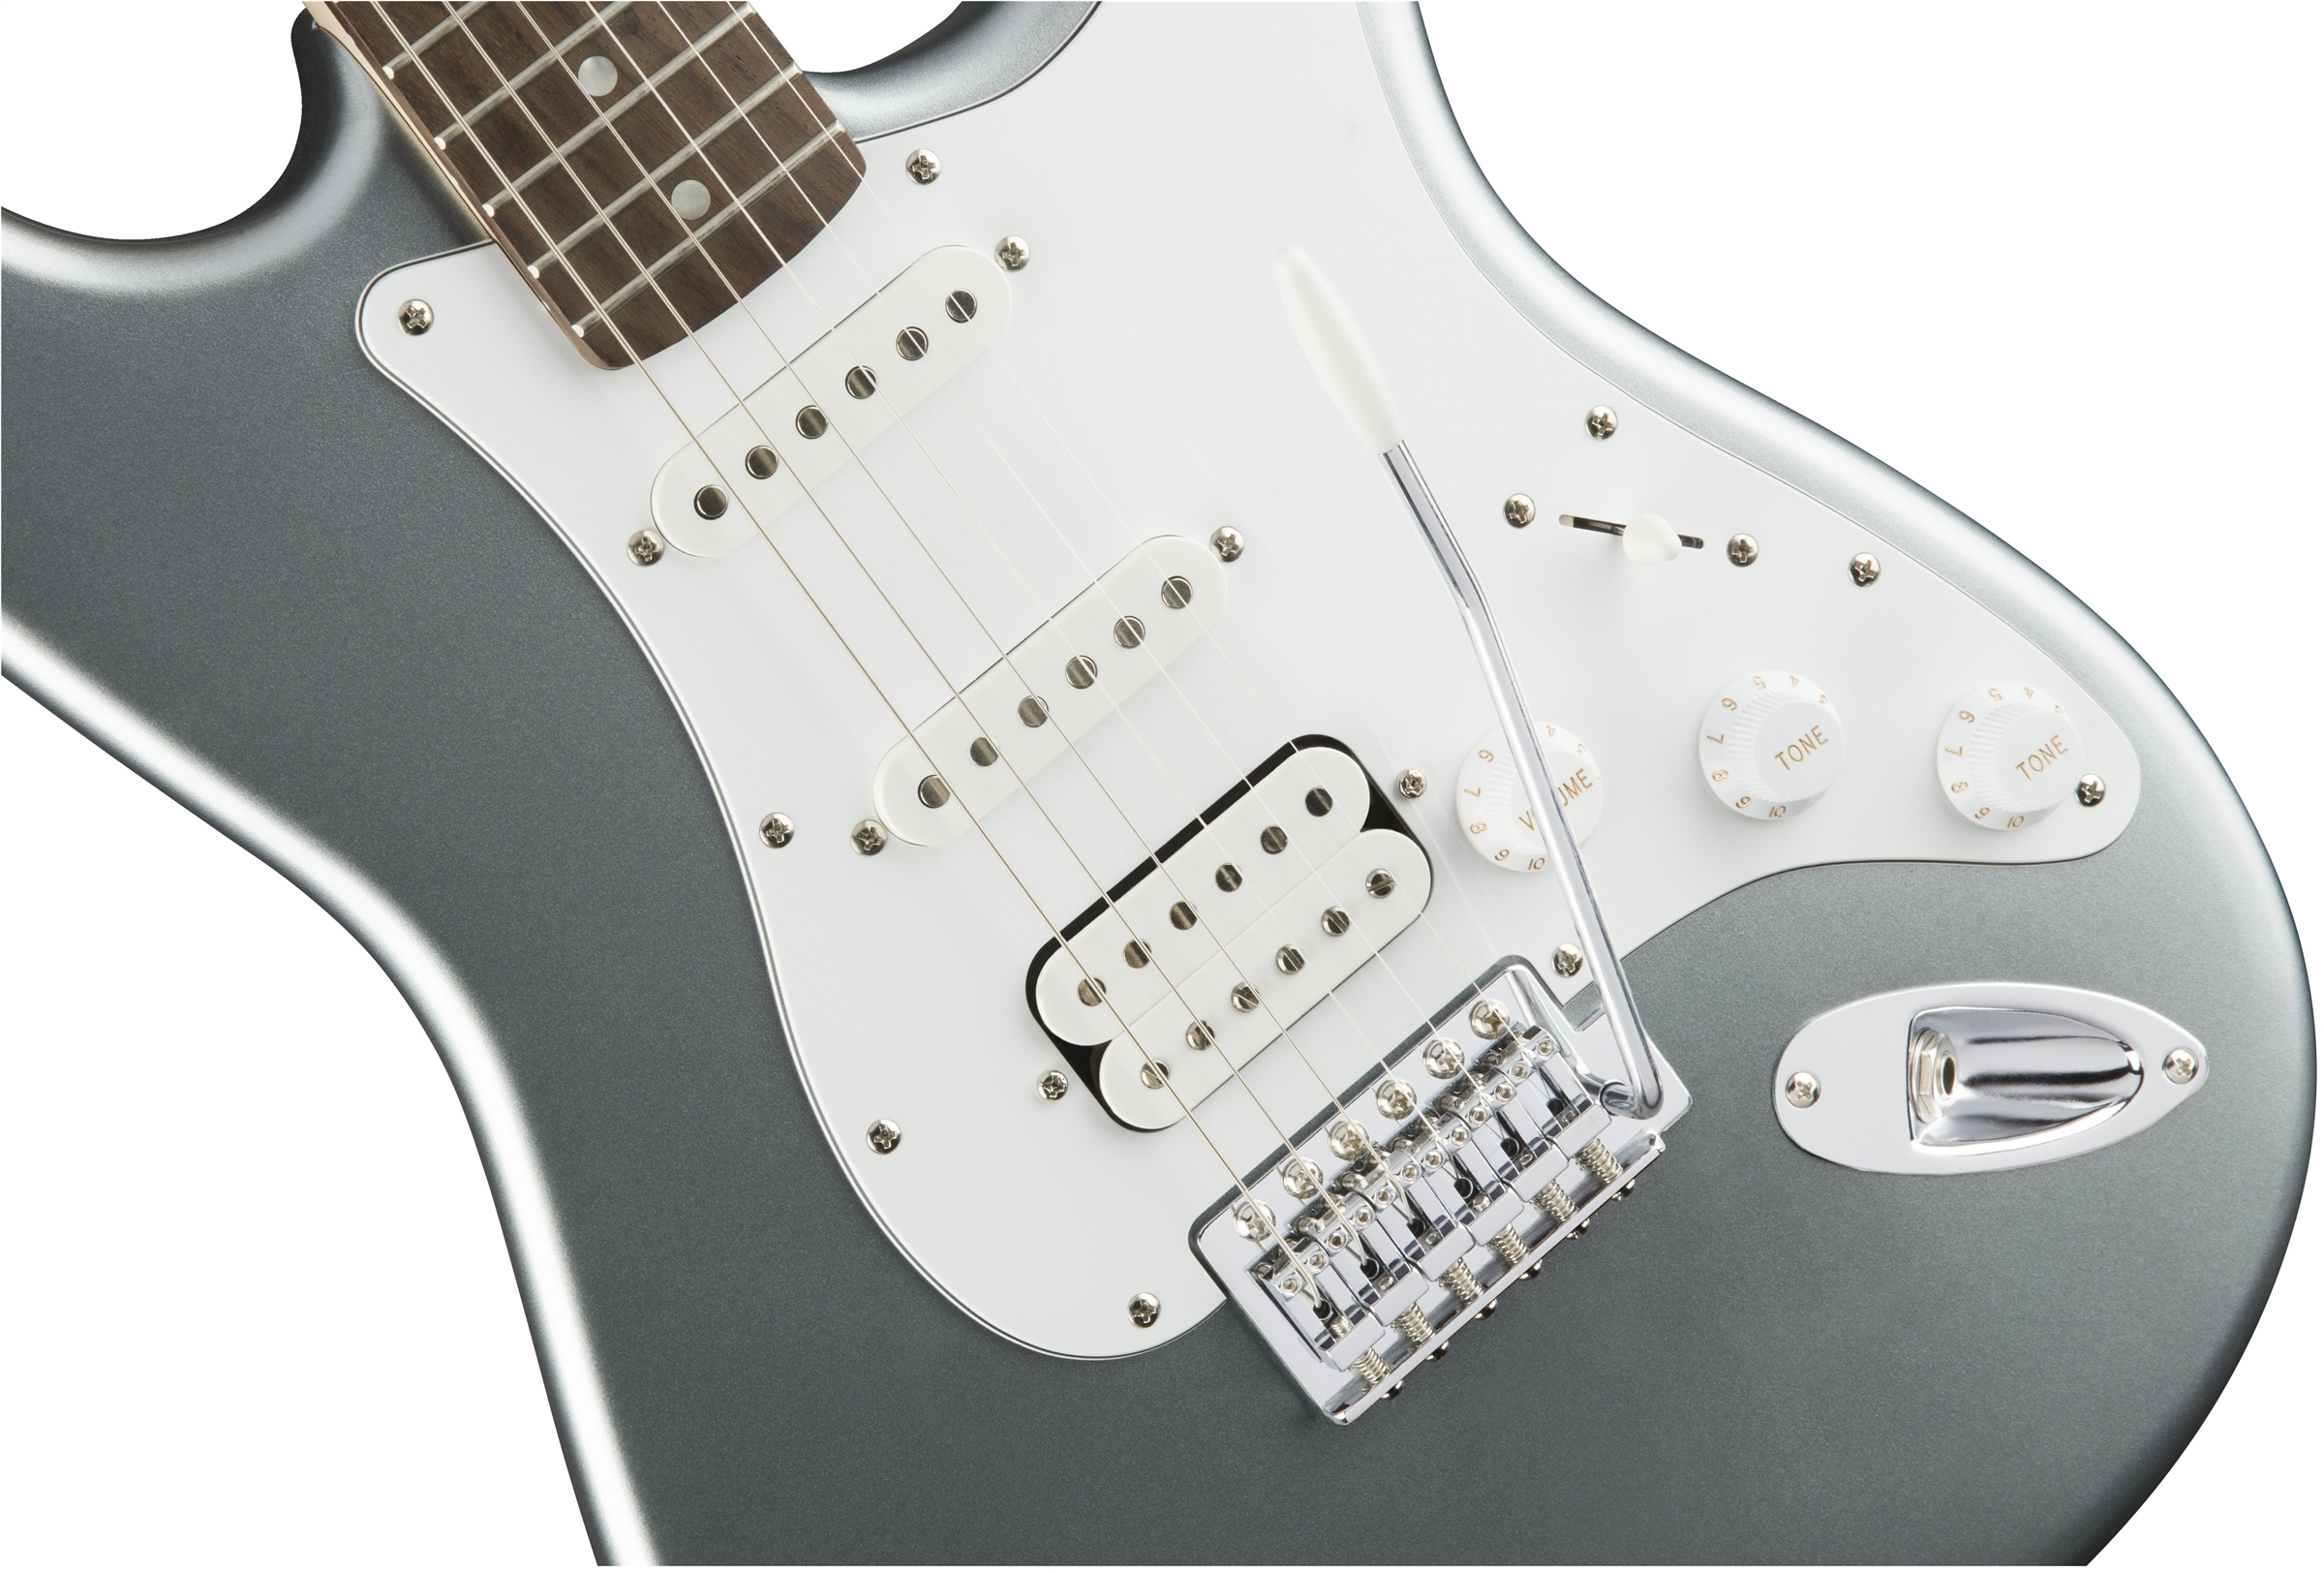 Beautiful Strat Hss Wiring Diagram Adornment - The Wire - magnox.info